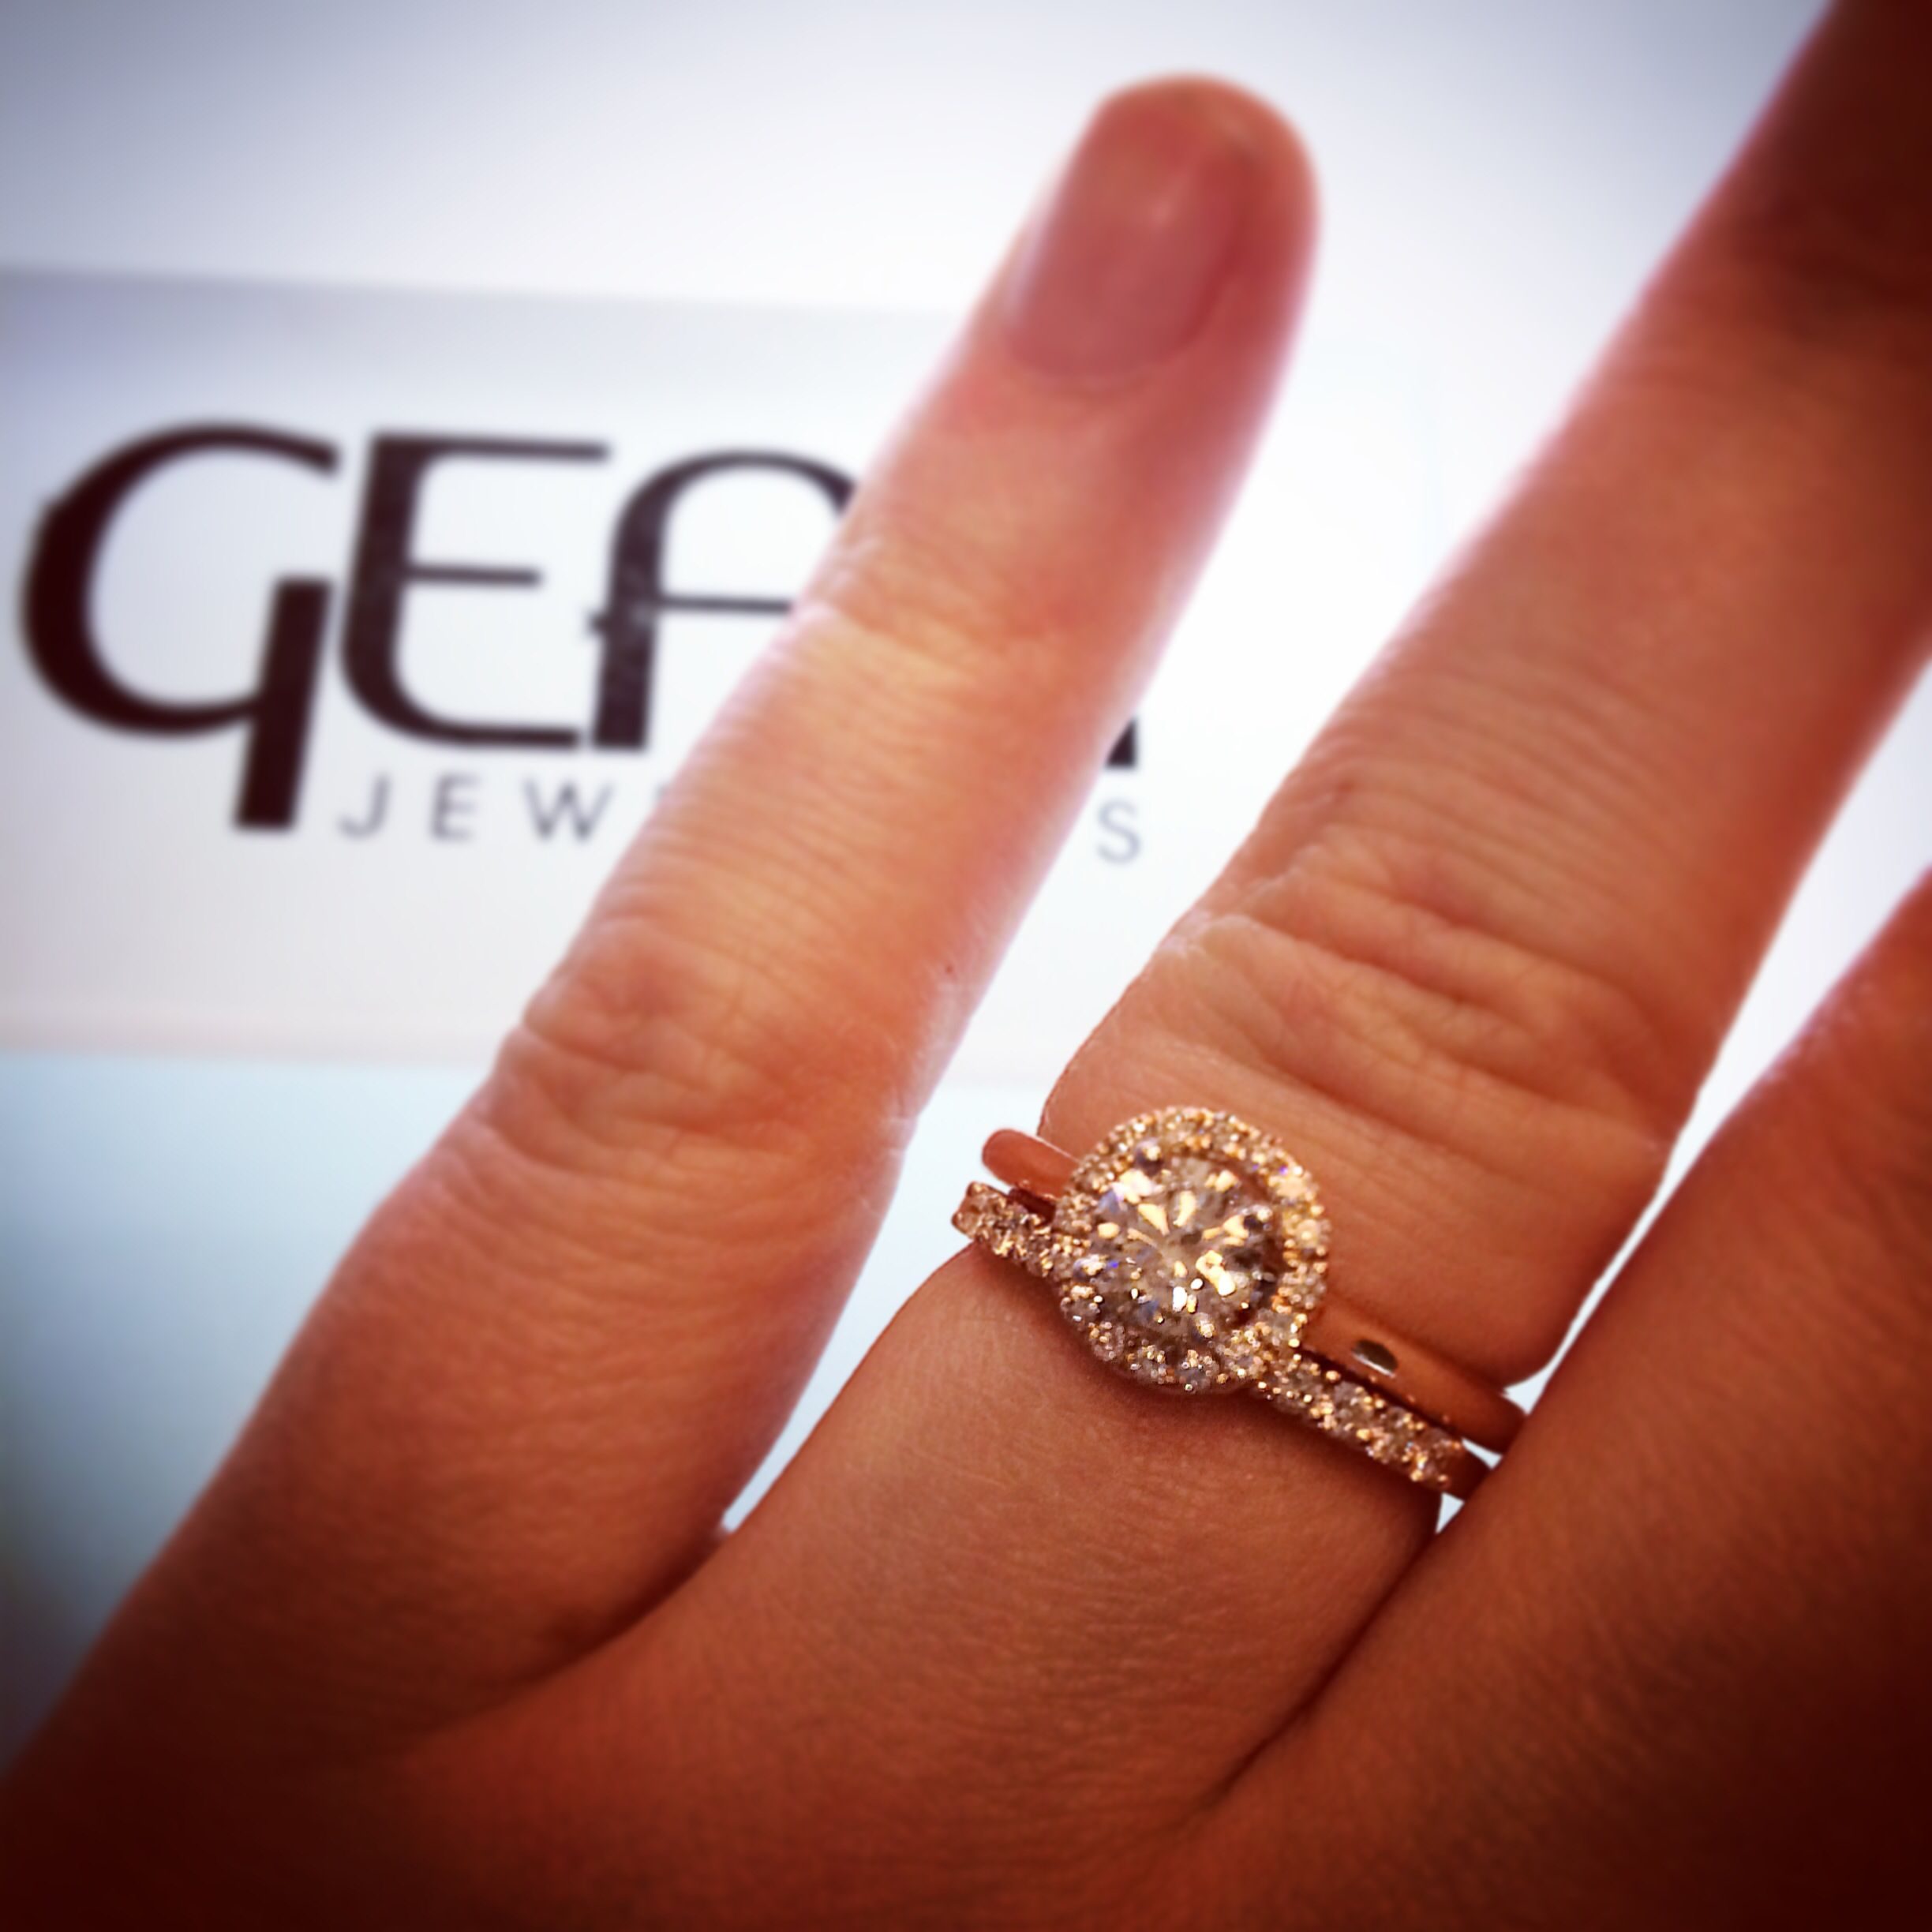 Rose gold diamond halo engagement ring from Dublin jewellers Gear